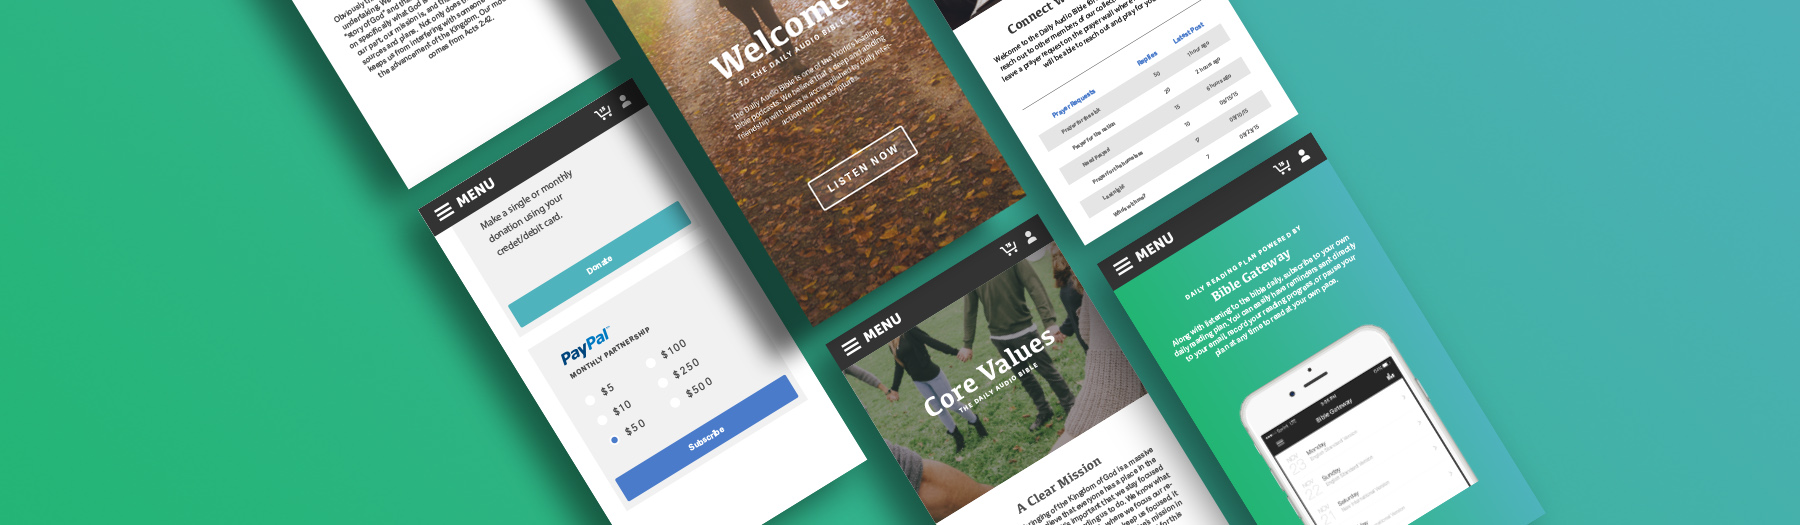 Graphic Design, Web Development, and Web Design With UX/UI In Mind